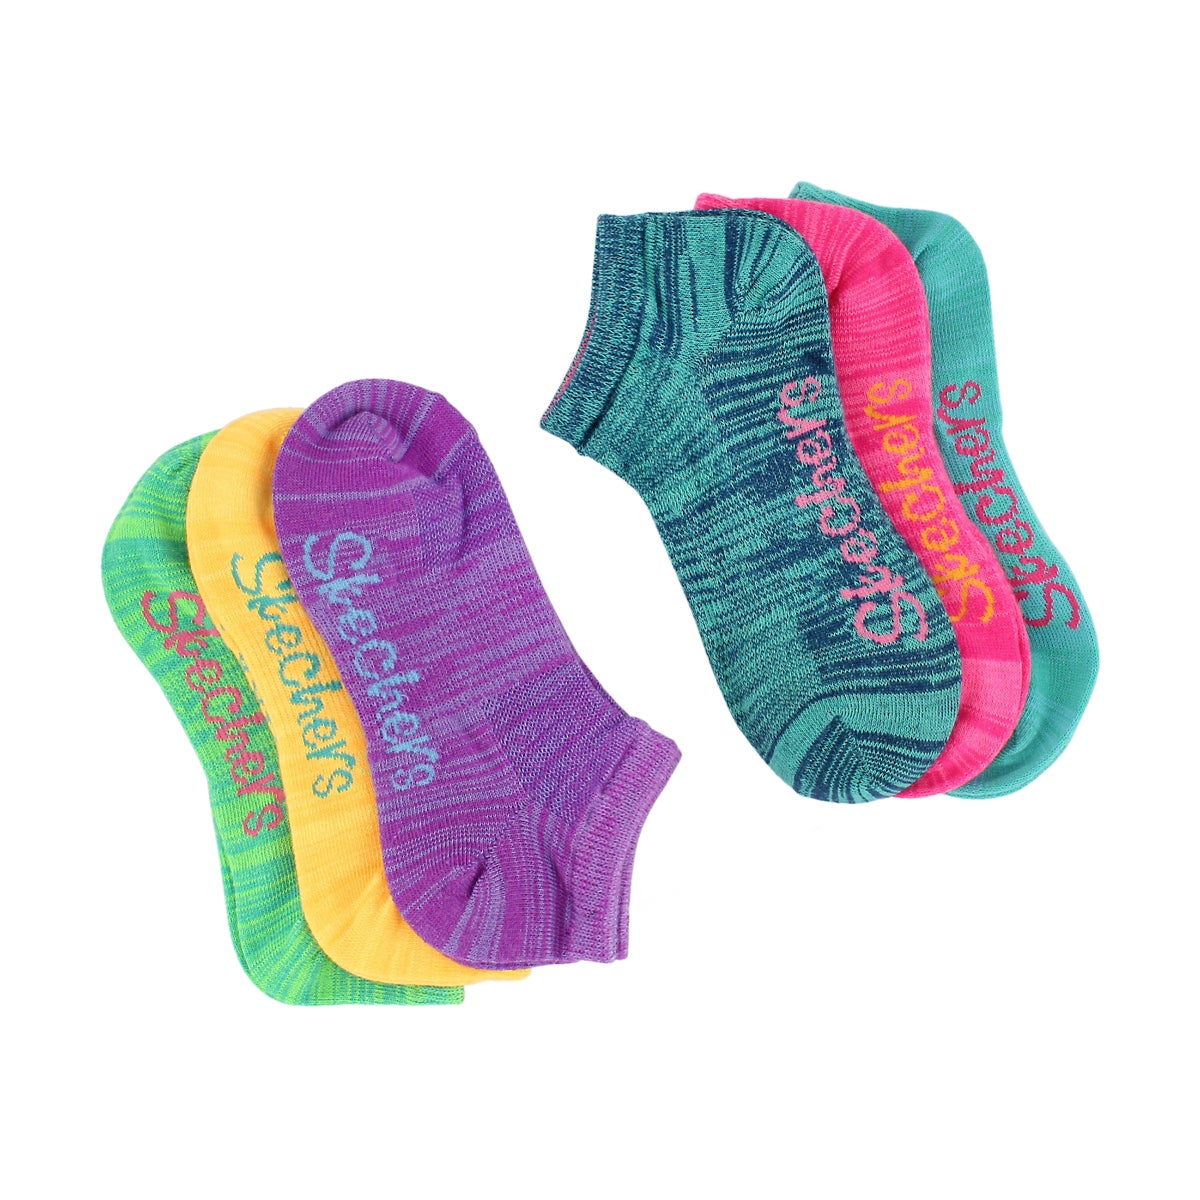 Girls' LOW CUT NO TERRY MED multi socks - 6pk